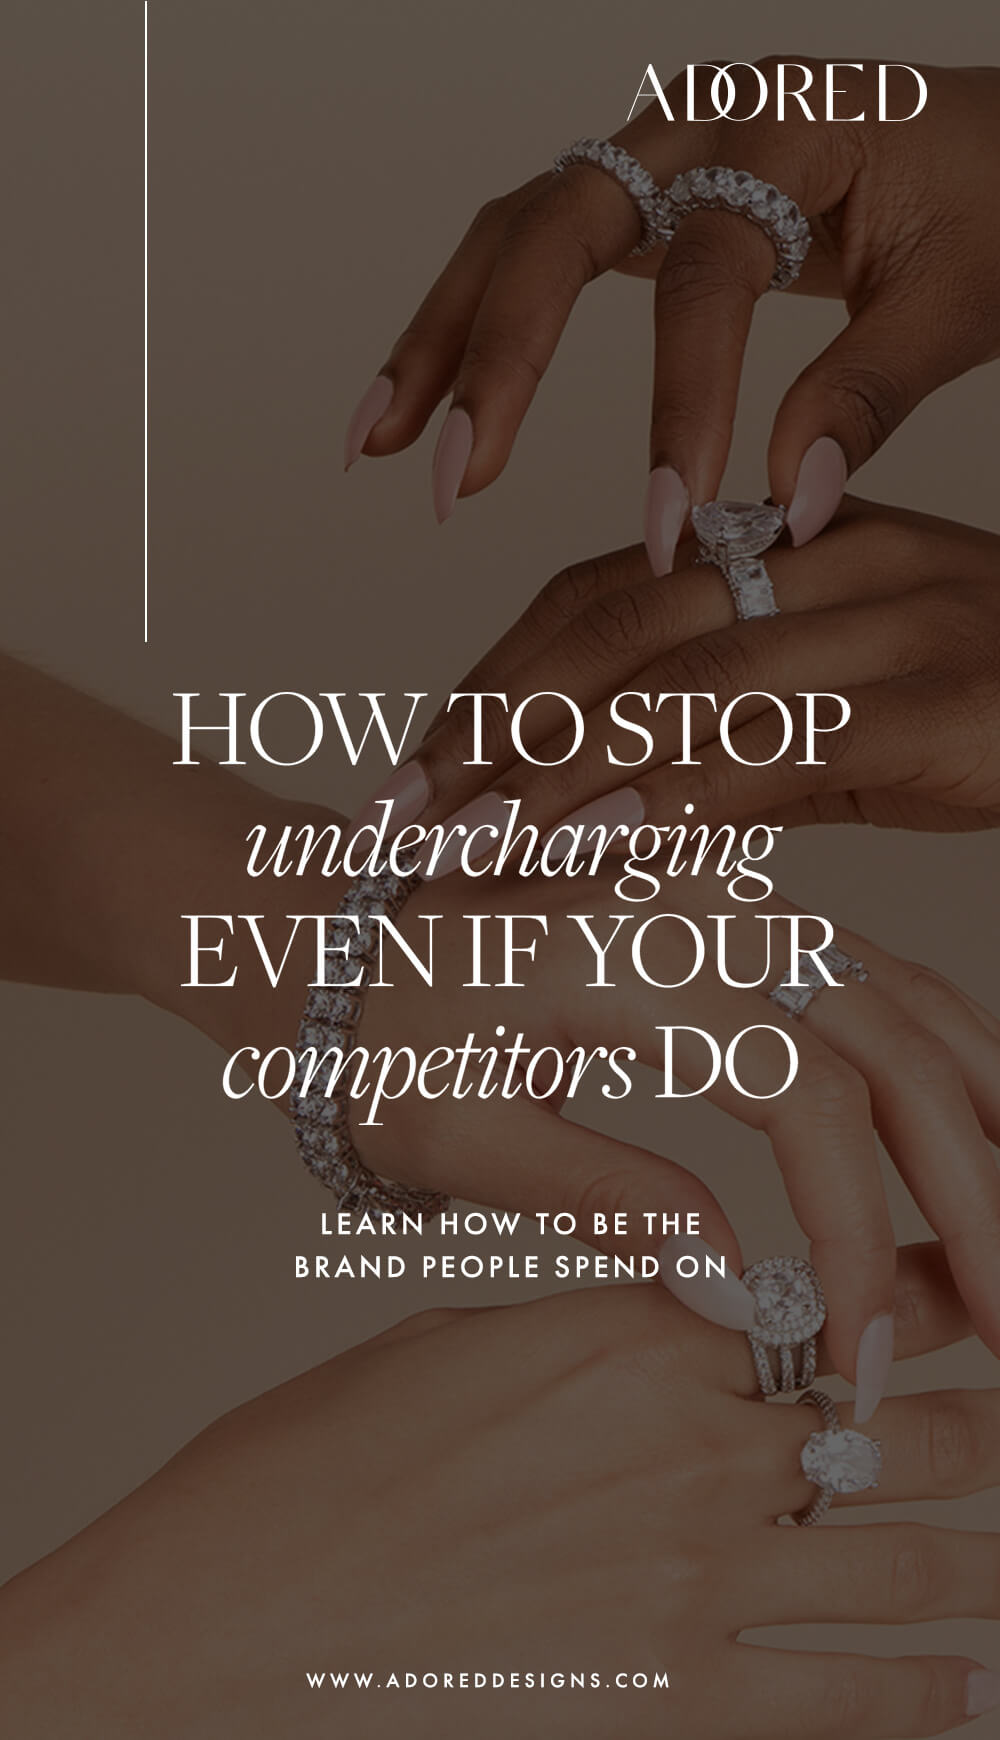 How to stop overcharging even if your competitors do!